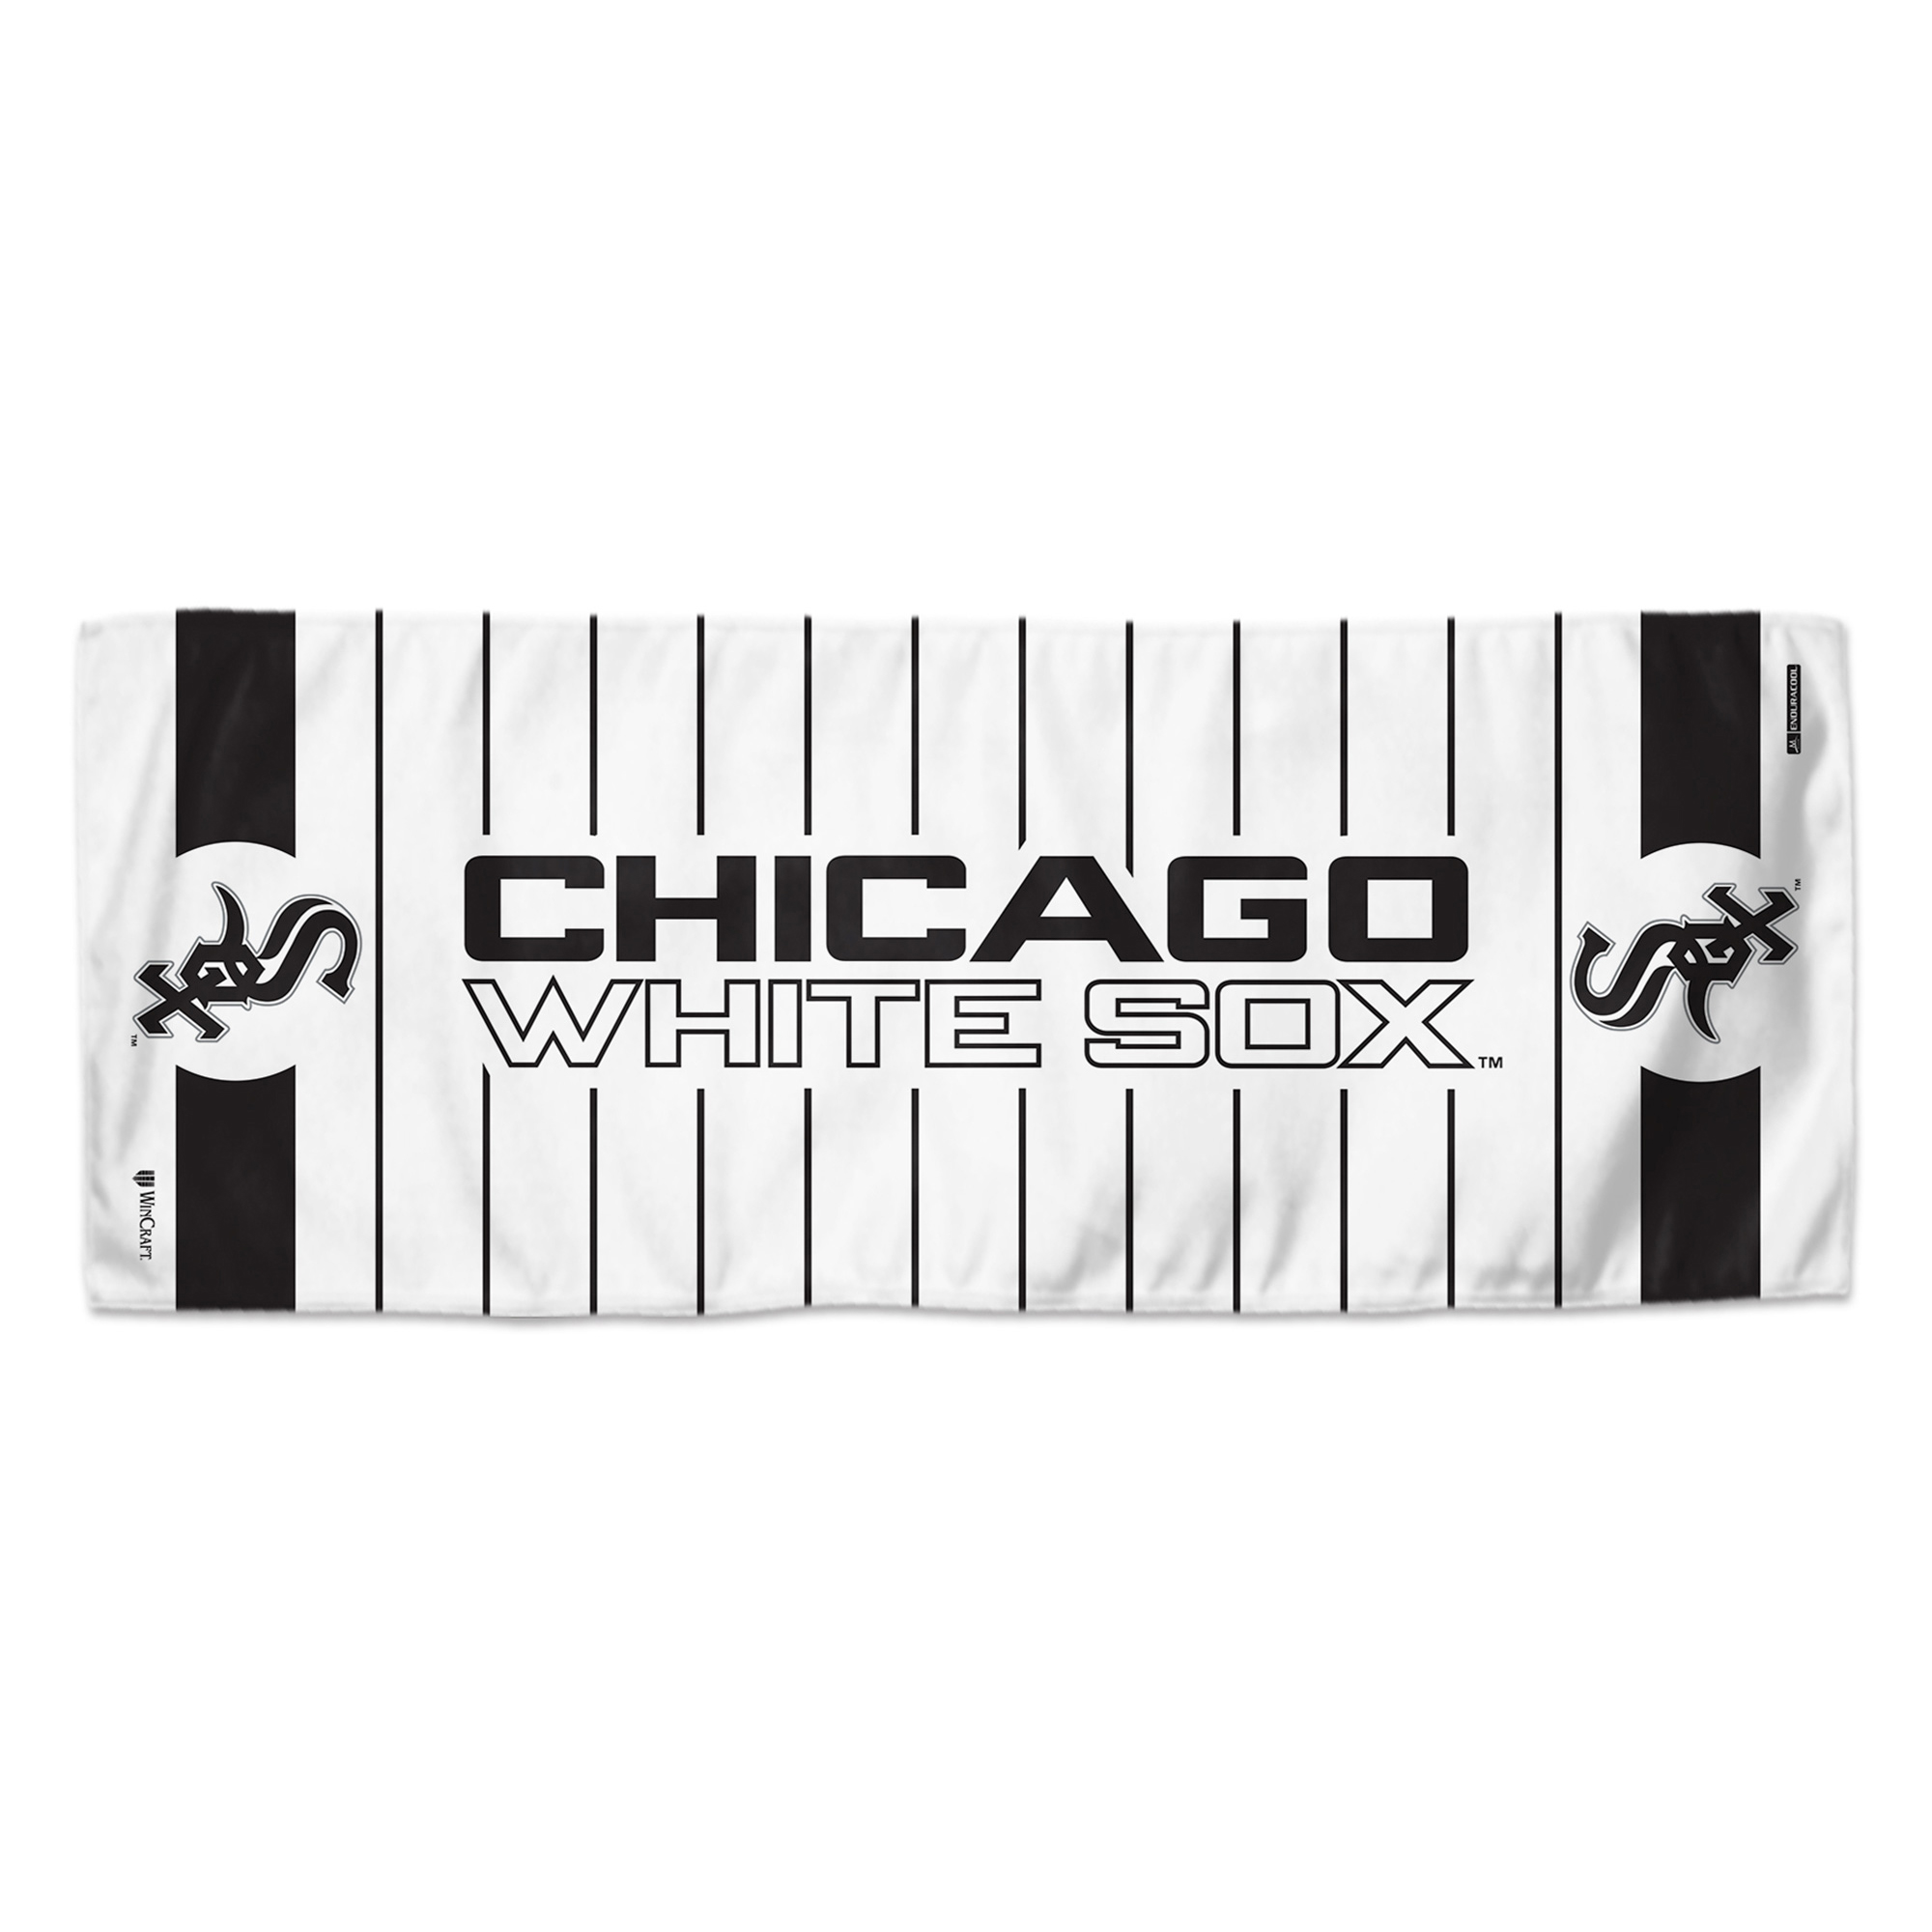 "Chicago White Sox WinCraft 12"" x 30"" Double-Sided Cooling Towel - No Size"